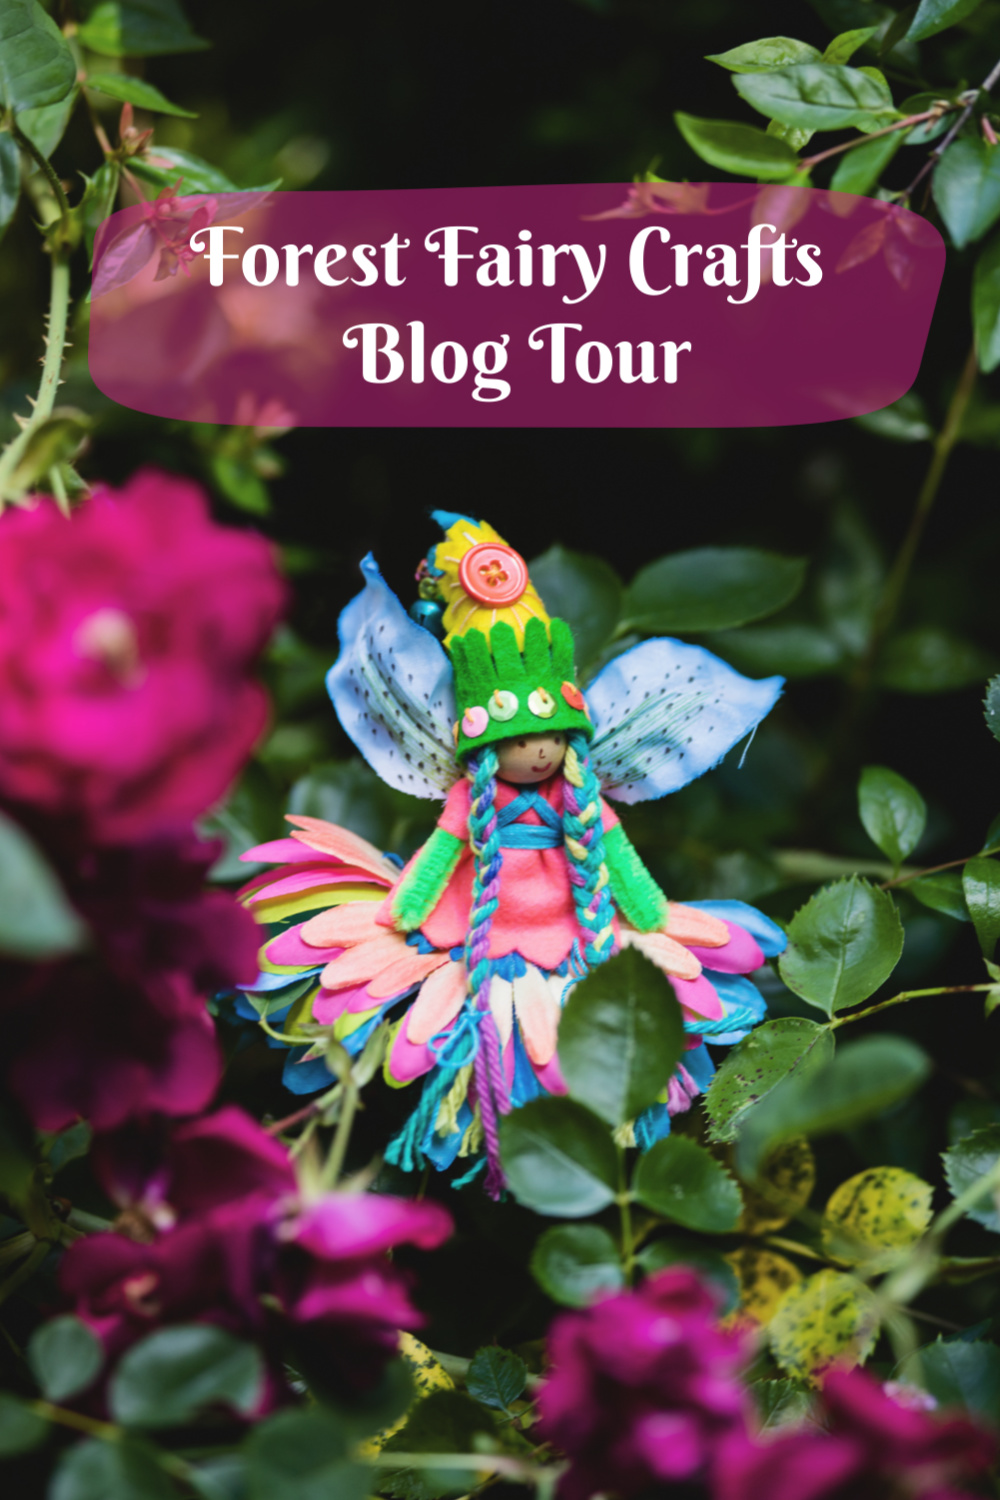 Summer Blog Tour for Magical Forest Fairy Crafts through the Seasons sewing with children